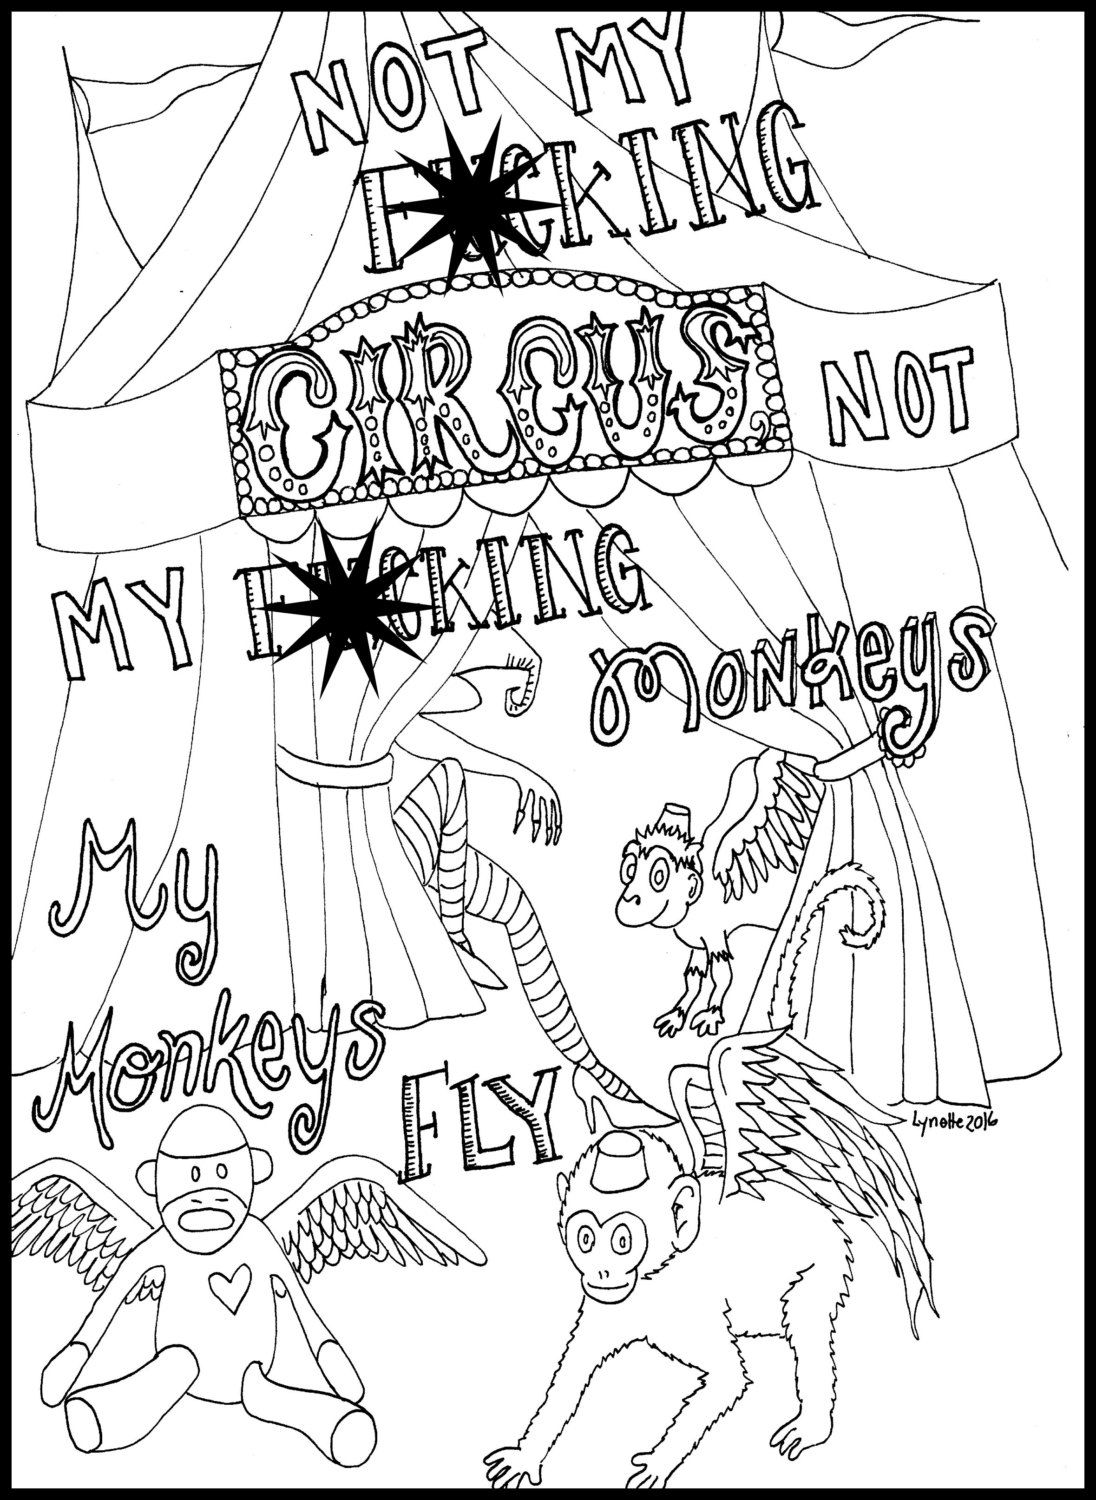 Swear word coloring book sarah bigwood - Sweary Coloring Page Mature Content Flying Monkey Coloring Page Cuss Word Coloring Swear Word Coloring Adult Coloring Page